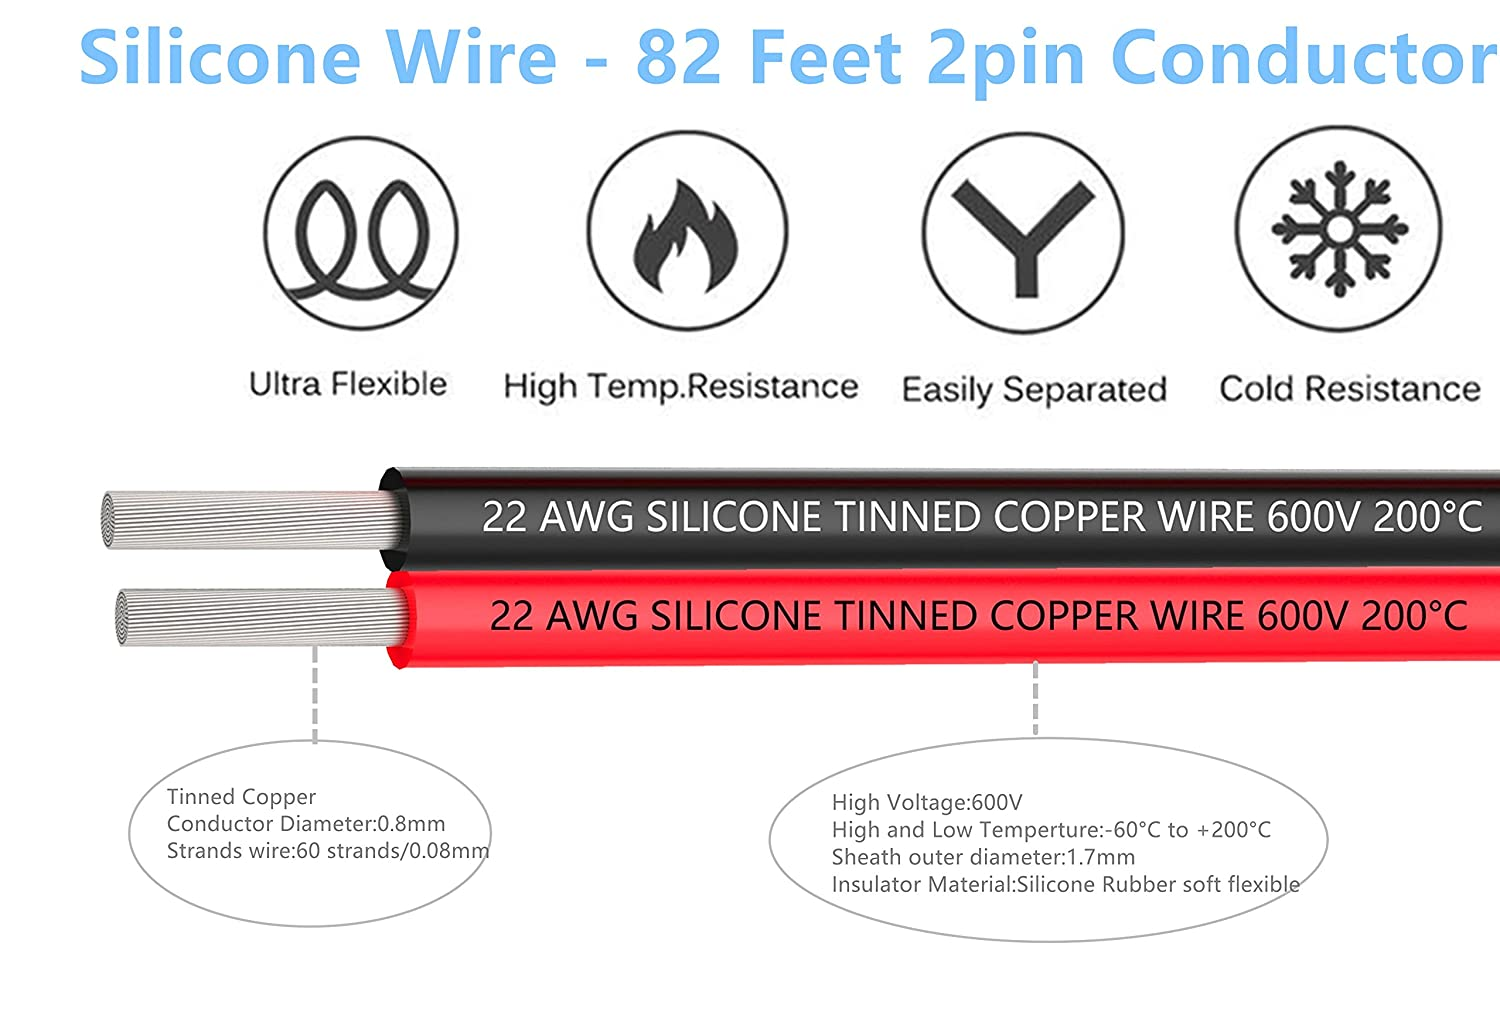 Funky 22 awg stranded wire elaboration electrical diagram ideas tuofeng 22 gauge silicone wire 82 feet 2pin red black wire 22 awg greentooth Image collections